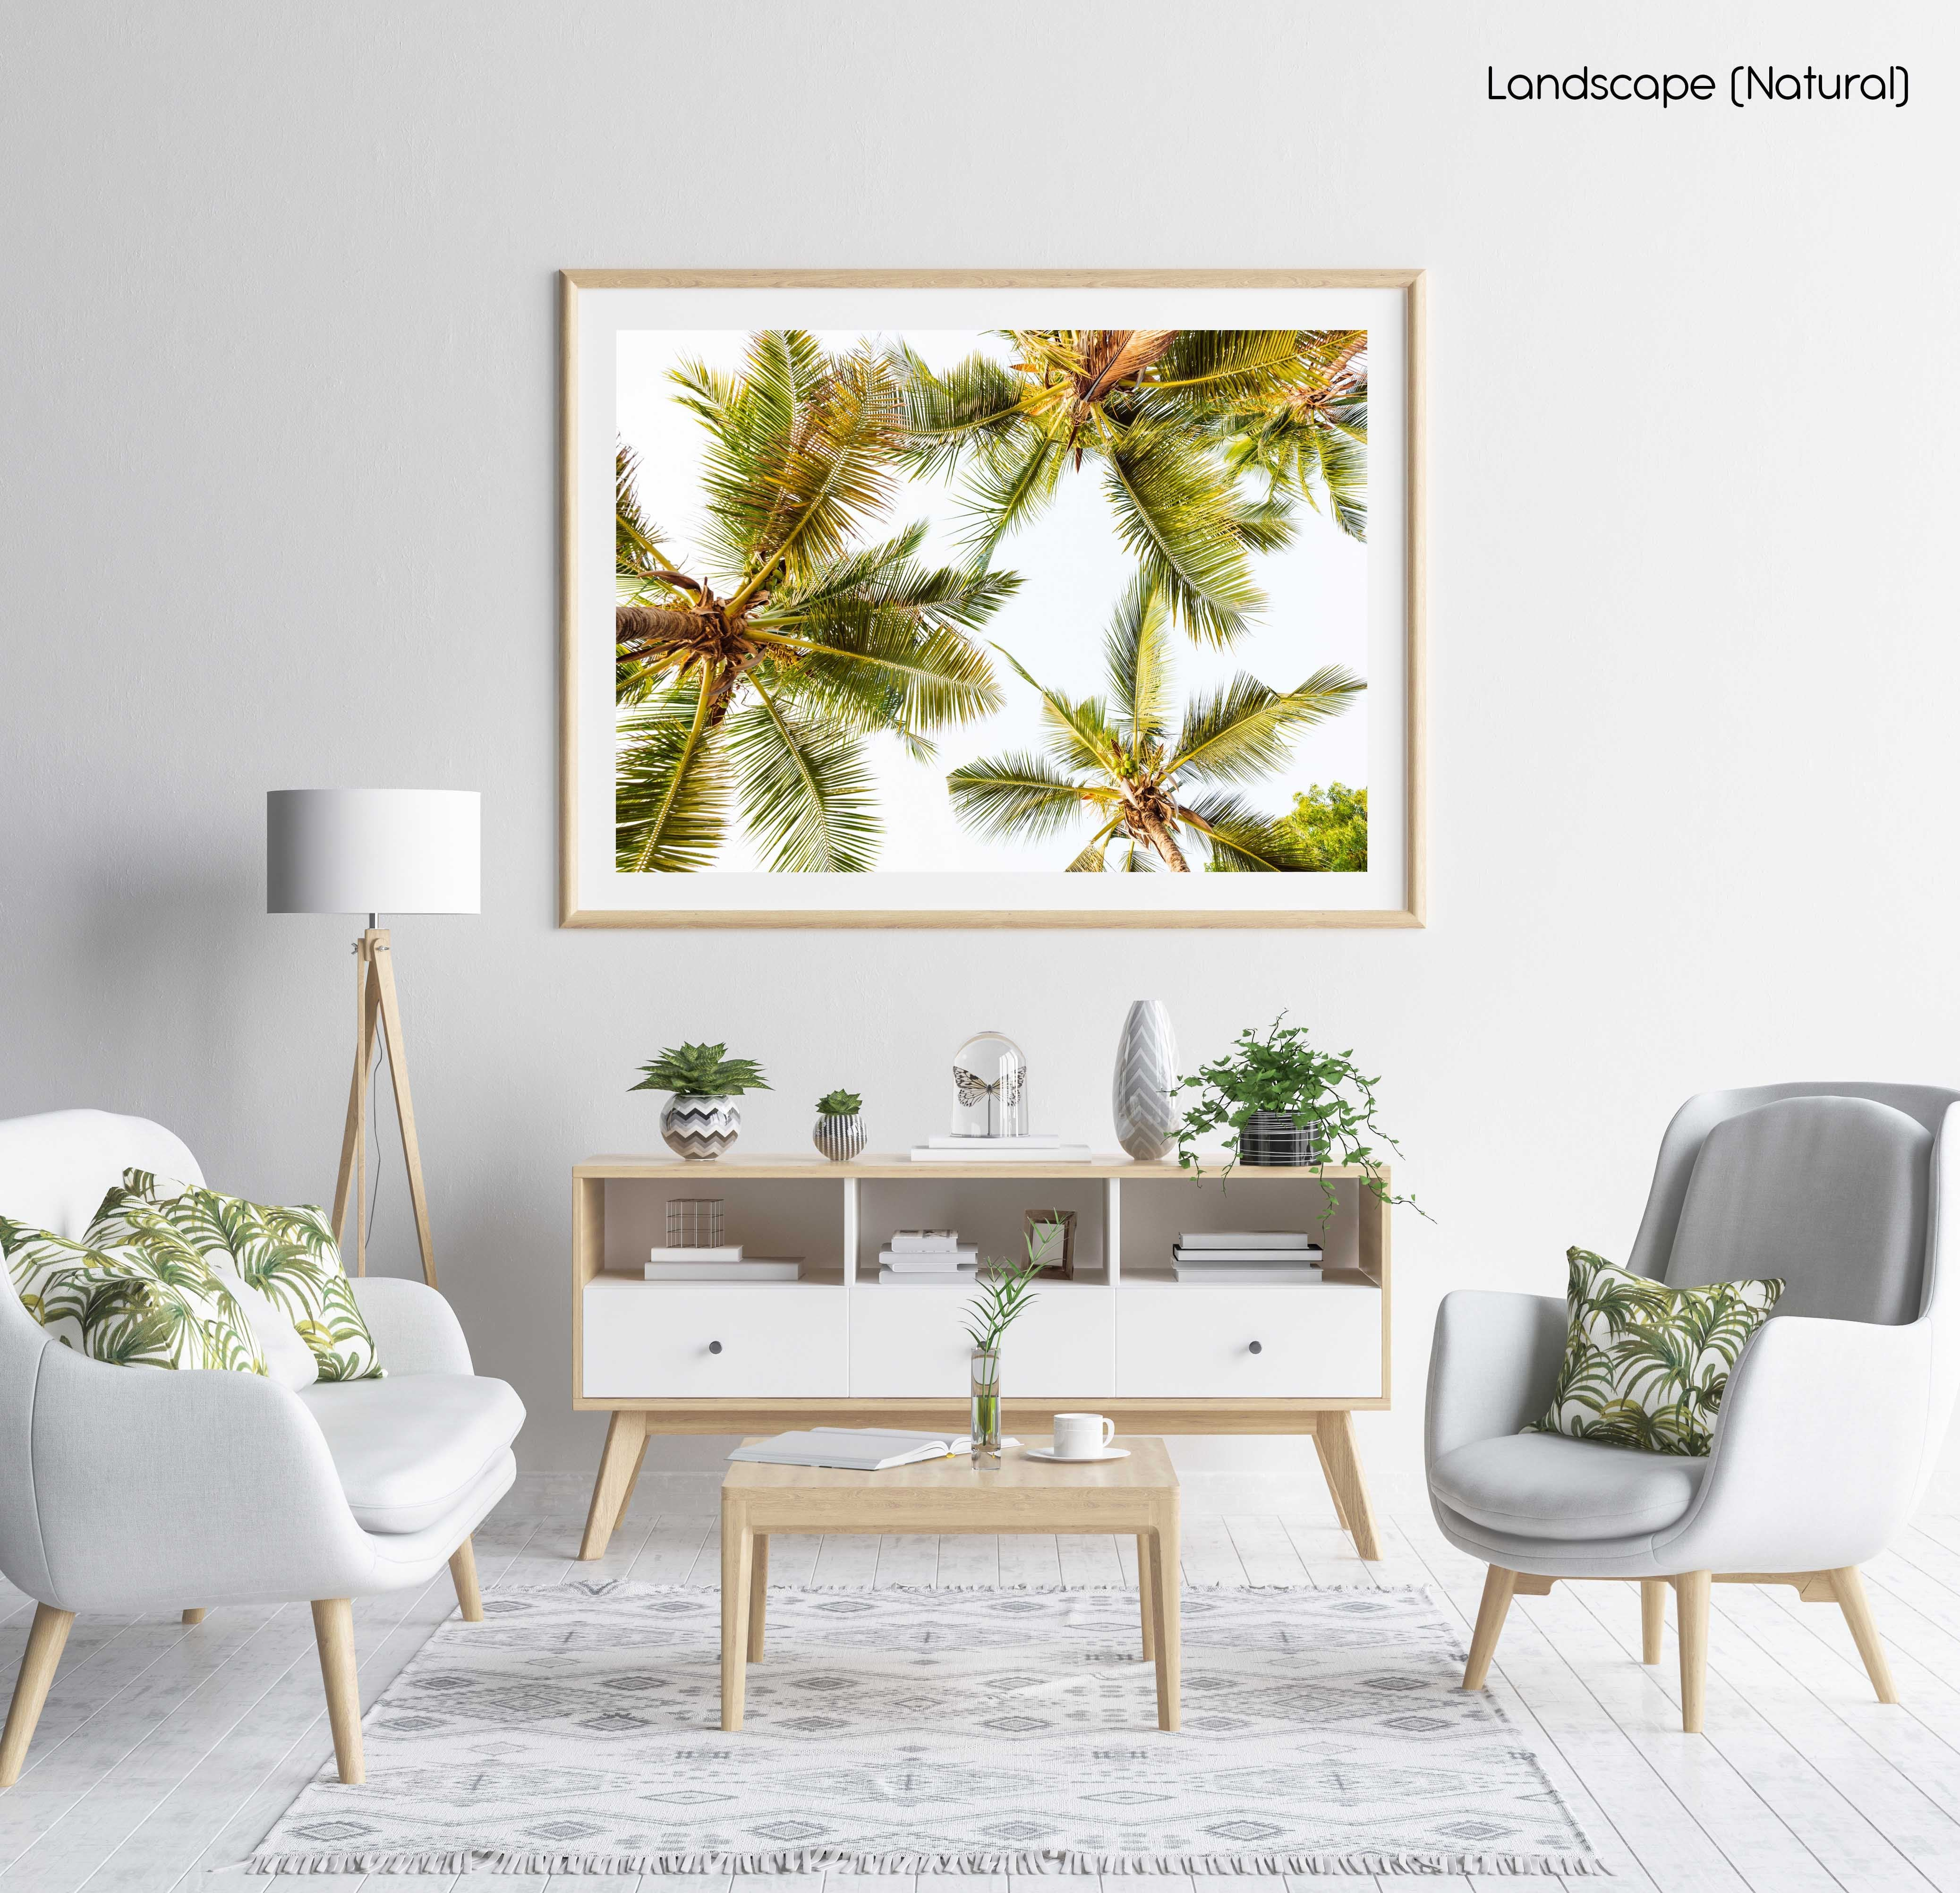 Green palm trees pattern and white sky in Kenya in a natural fine art frame